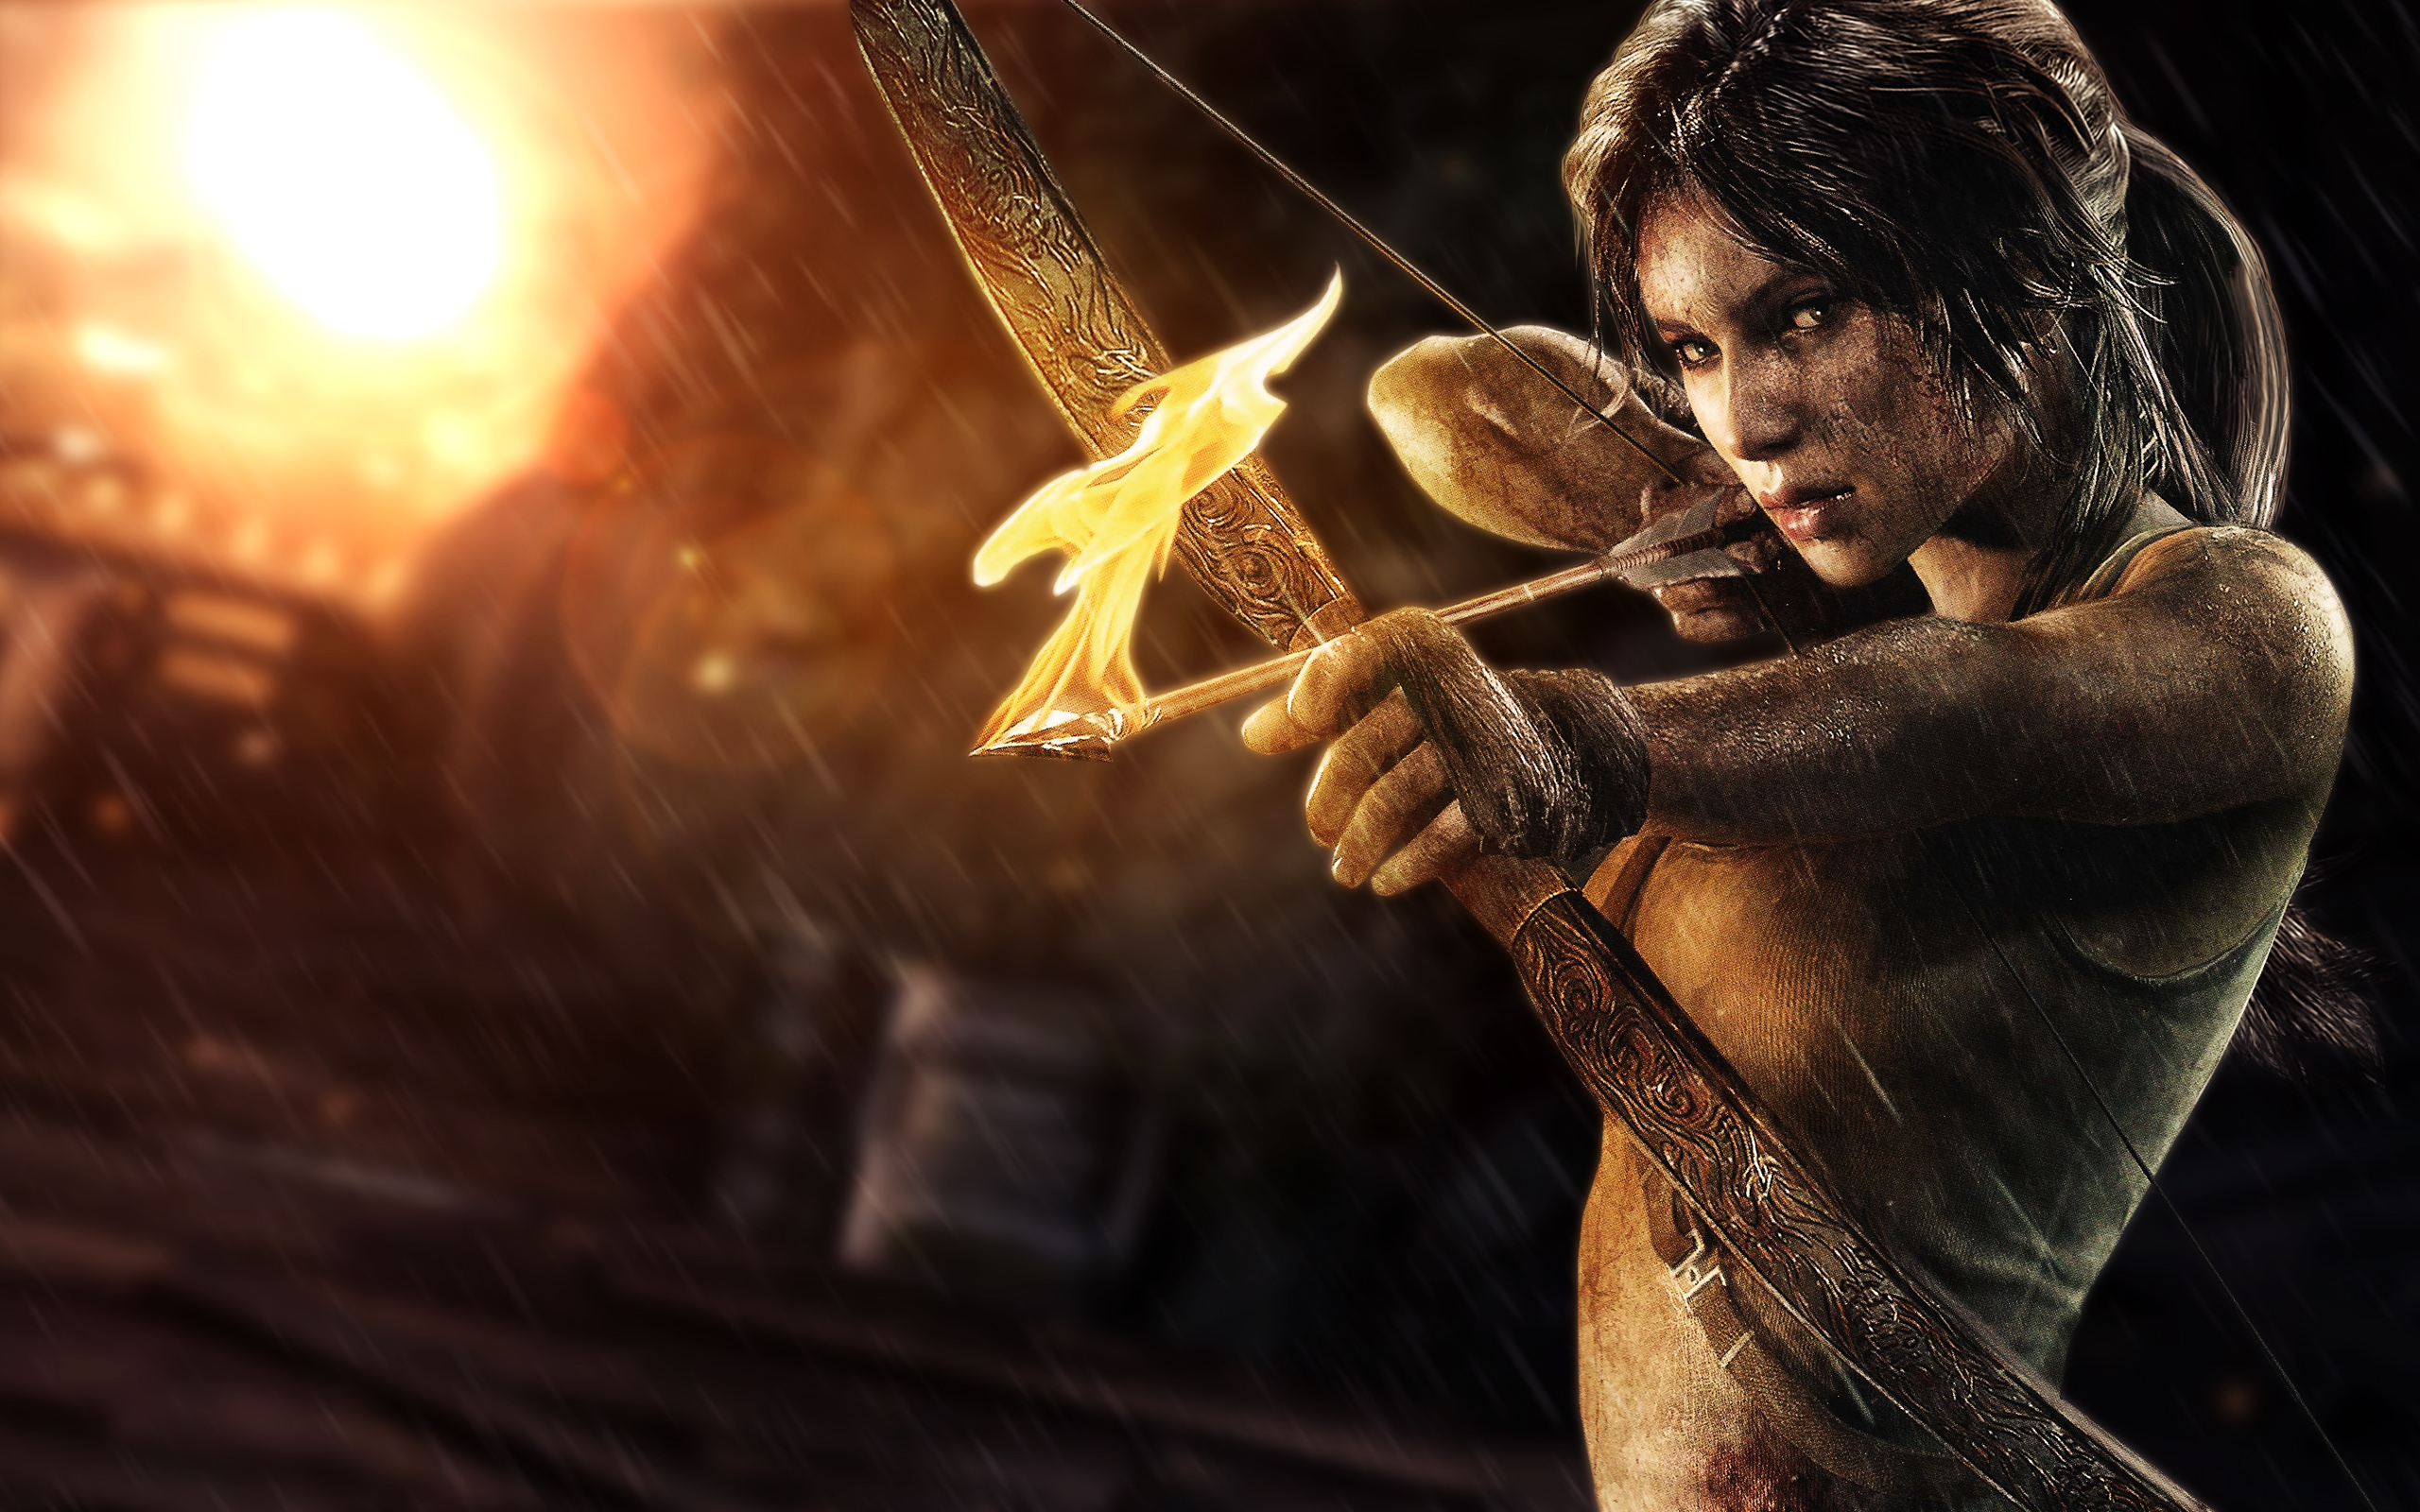 Abstract Tomb Tomb Raider Wallpaper 720p Wallpaper